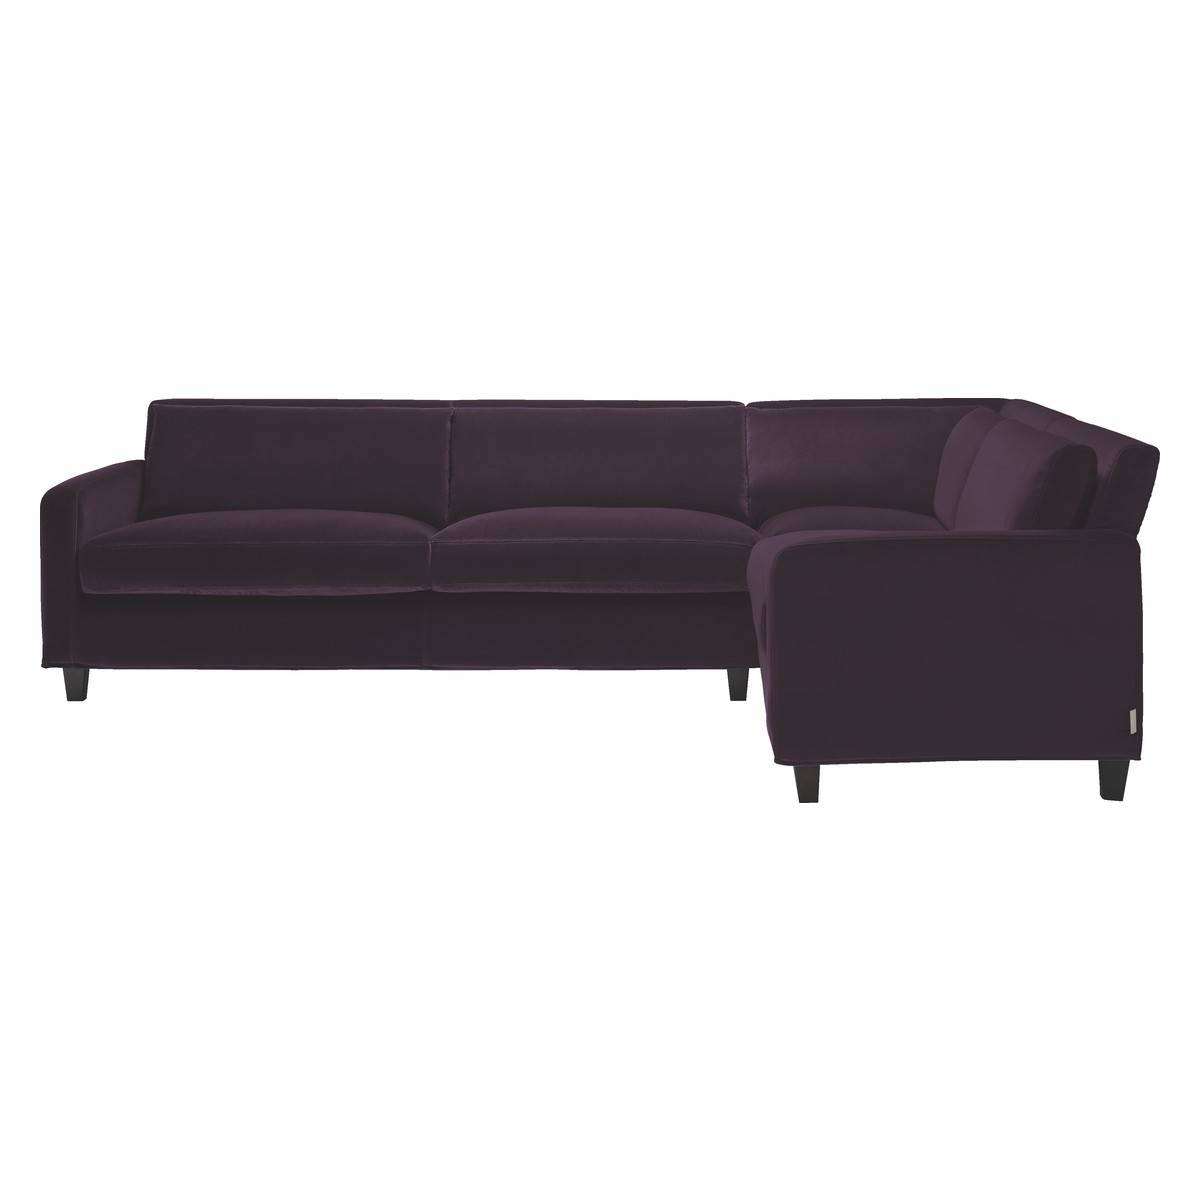 Chester Purple Velvet Left-Arm Corner Sofa, Dark Stained Feet regarding Velvet Purple Sofas (Image 10 of 30)